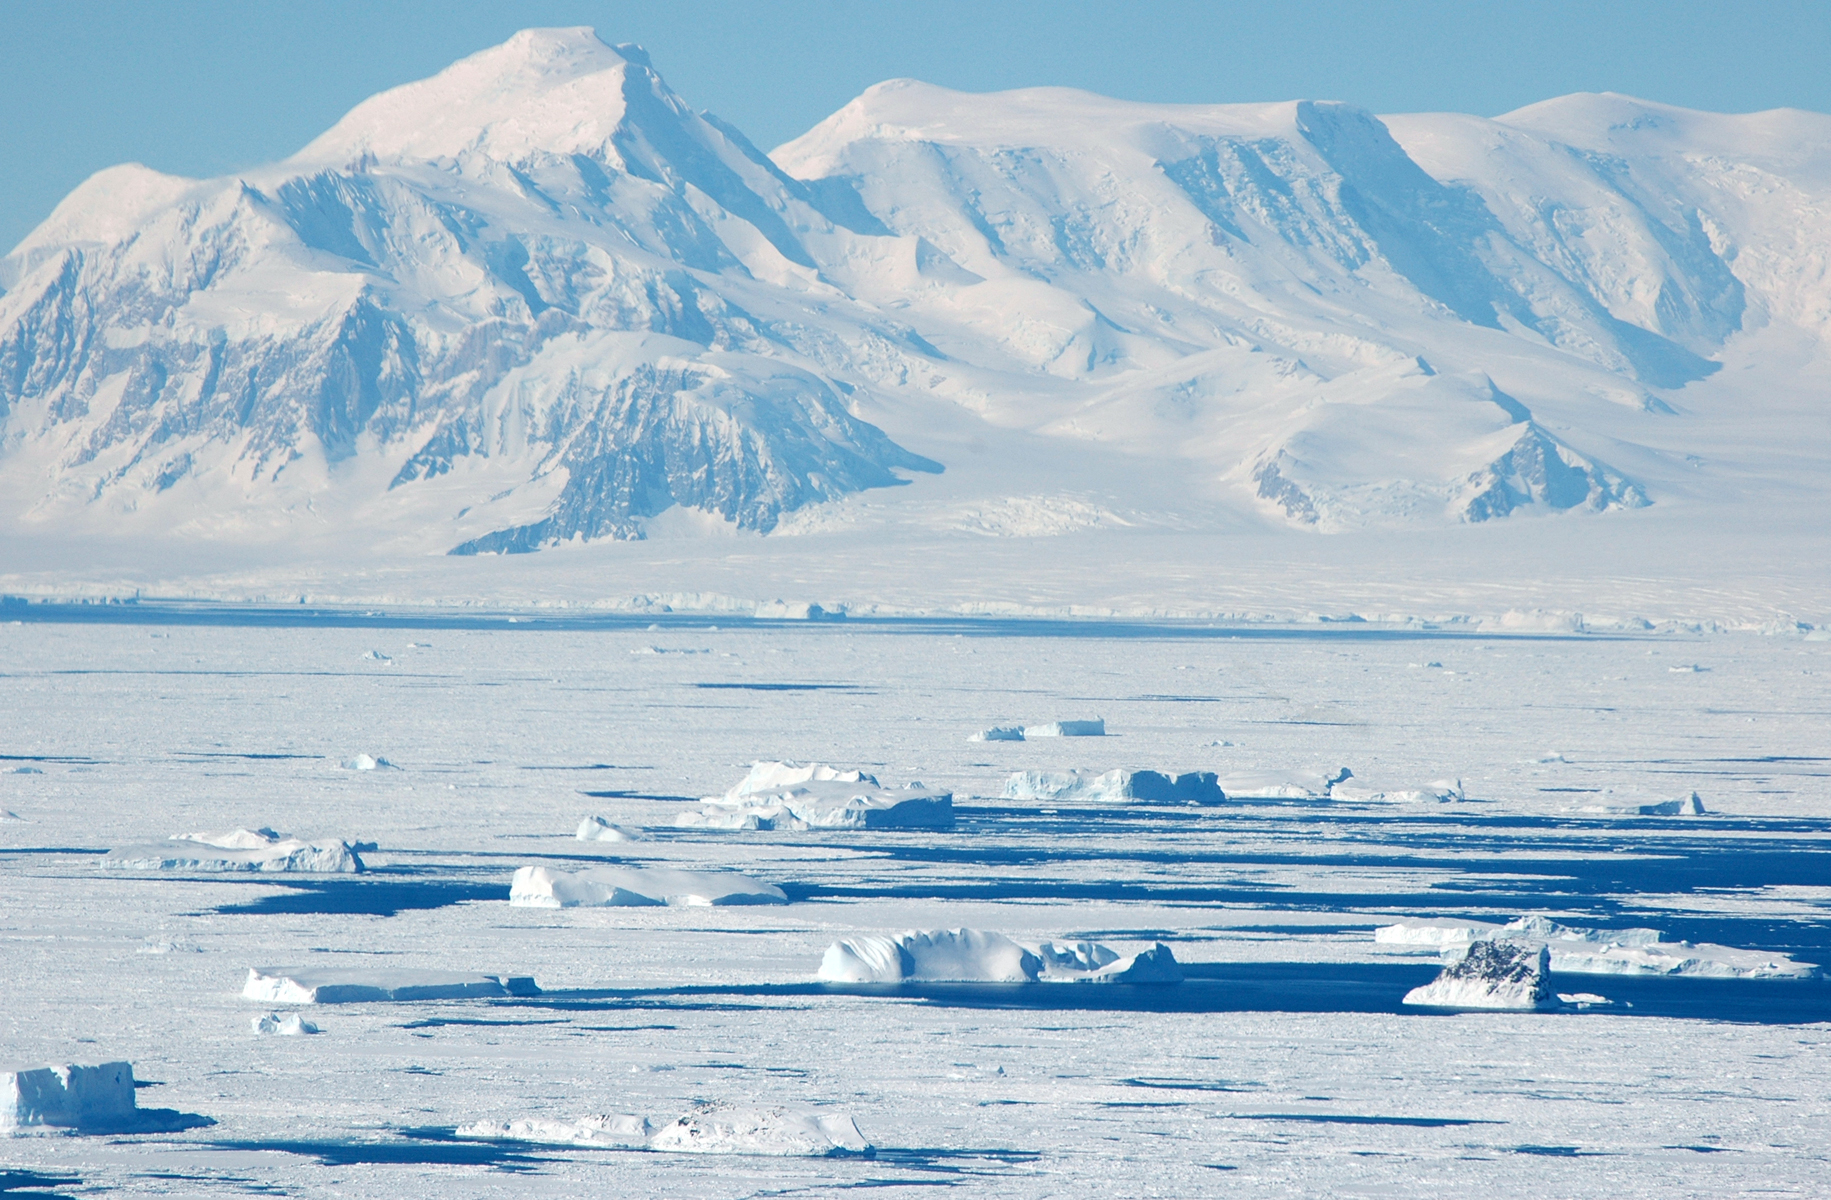 Sea-ice-focus-of-Wednesdays-Antarctica-flight-Dispatches-from-a-wallpaper-wpc9009047